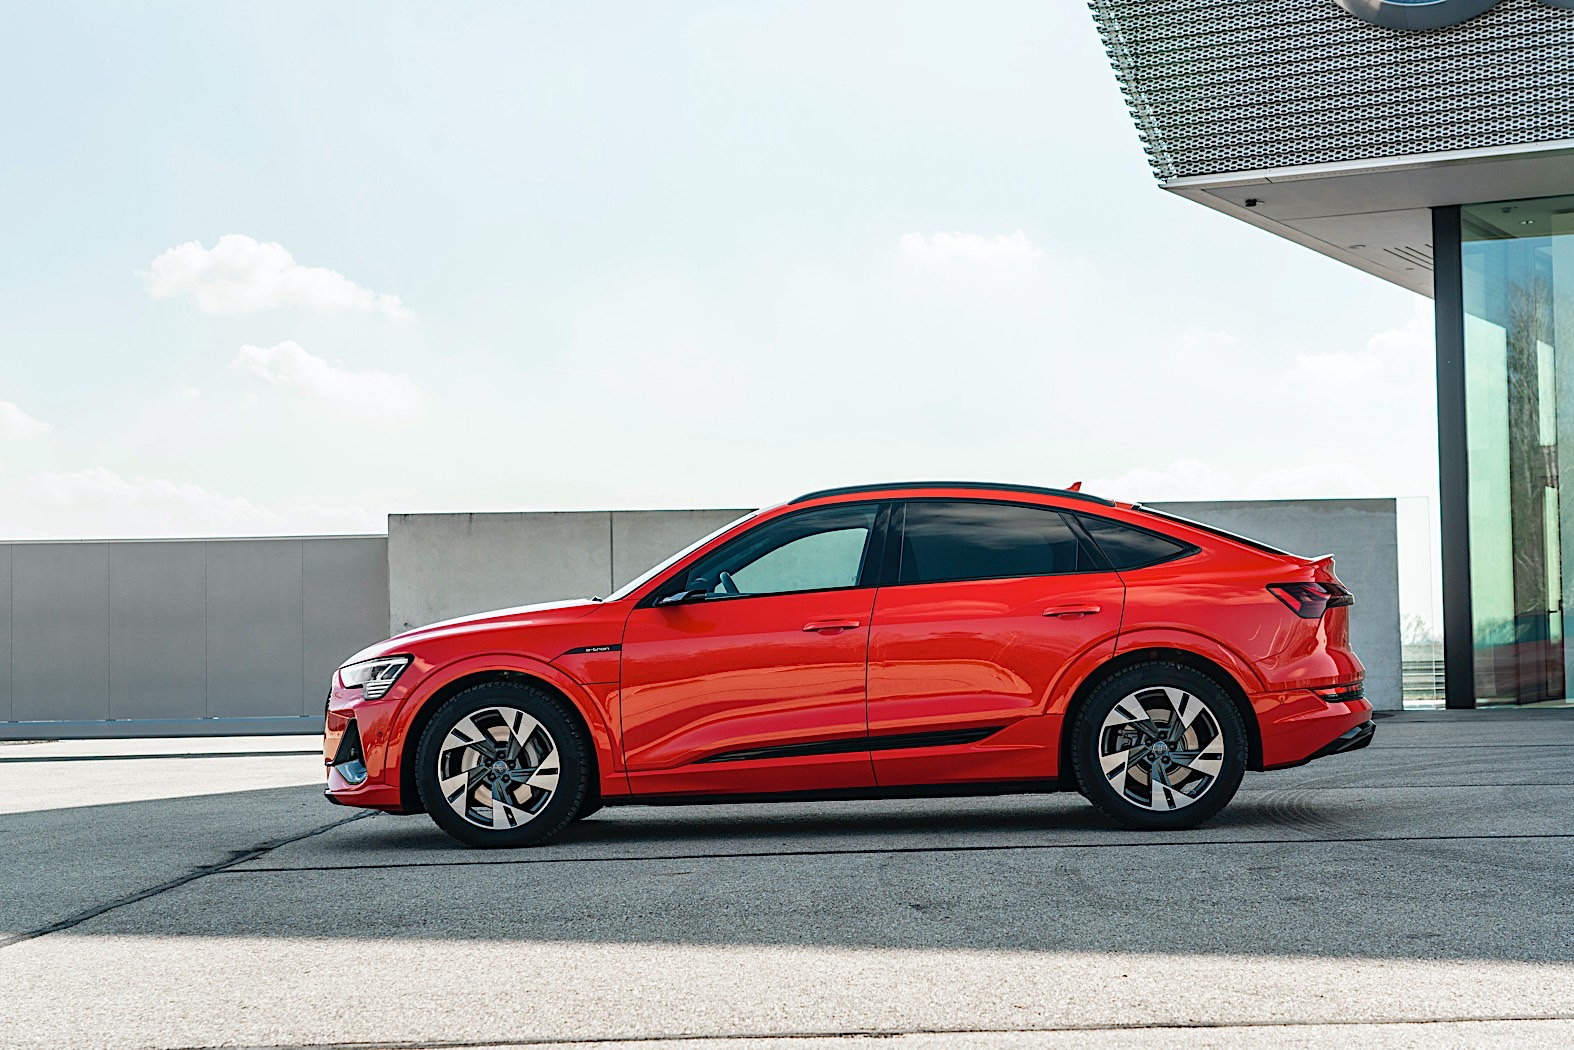 2021 audi e-tron sportback starts at $77,400, comes with